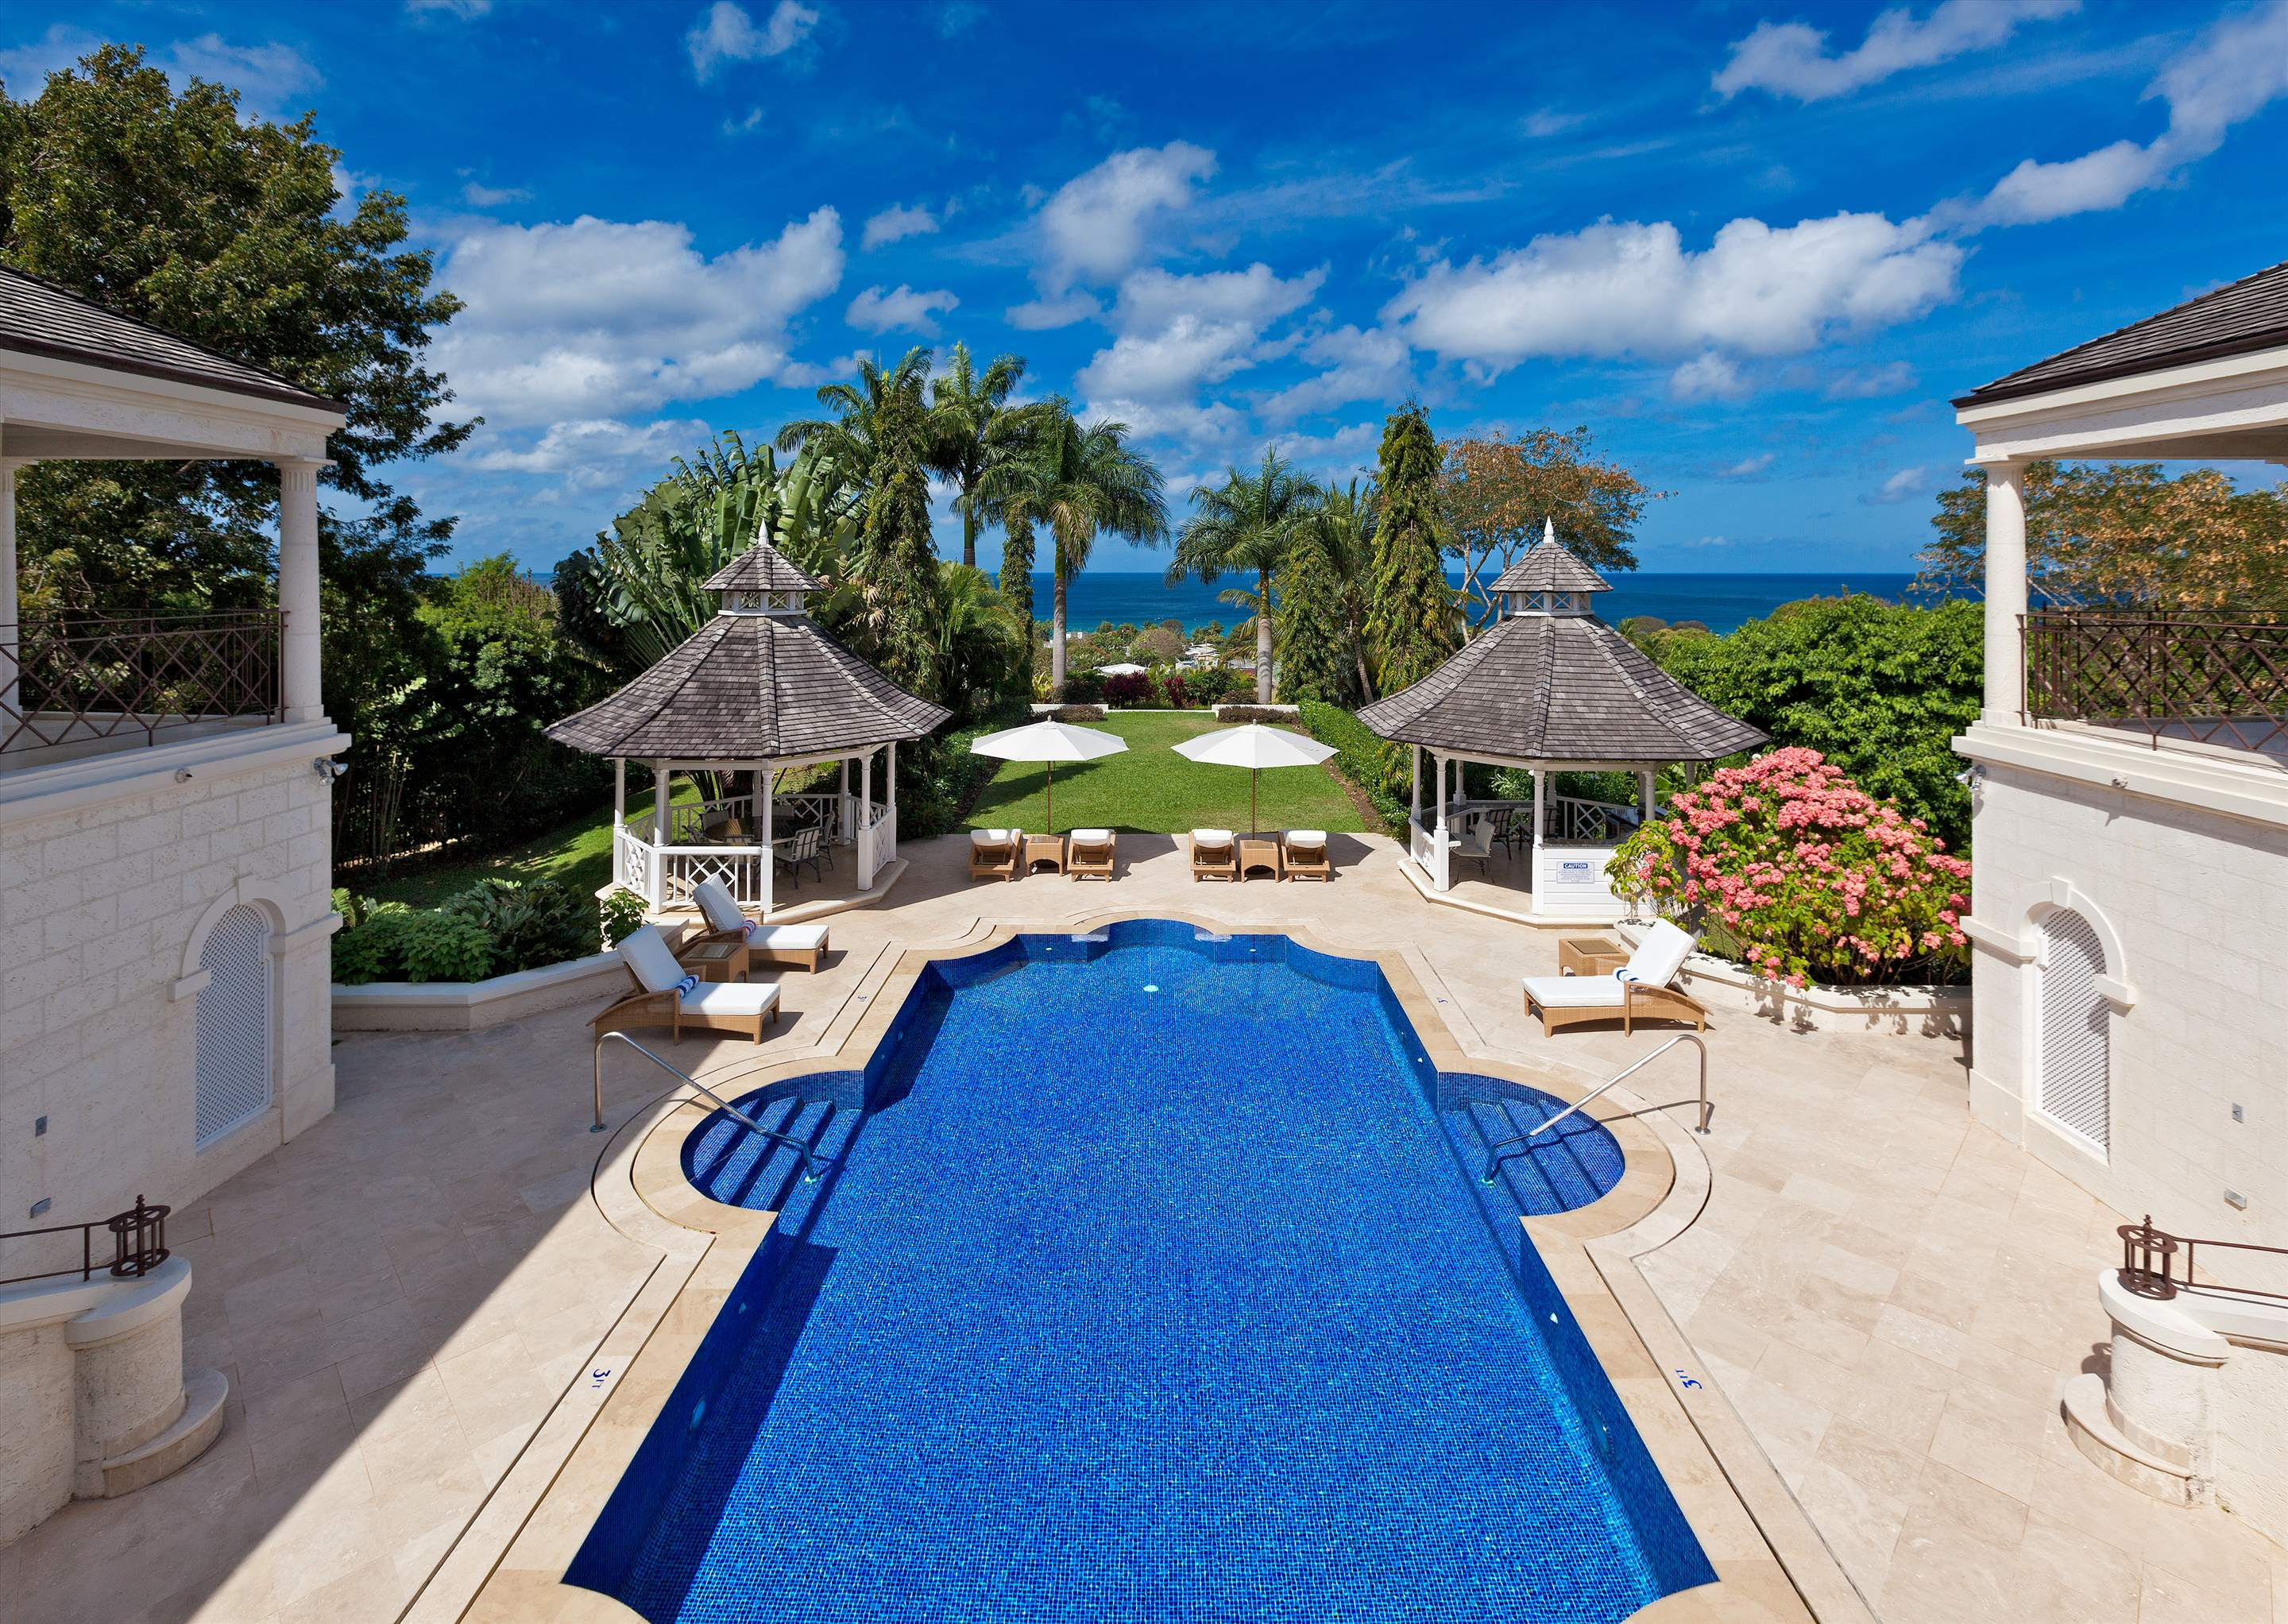 Illusion, Four Bedroom Rate, 4 bedroom villa in St. James & West Coast, Barbados Photo #2